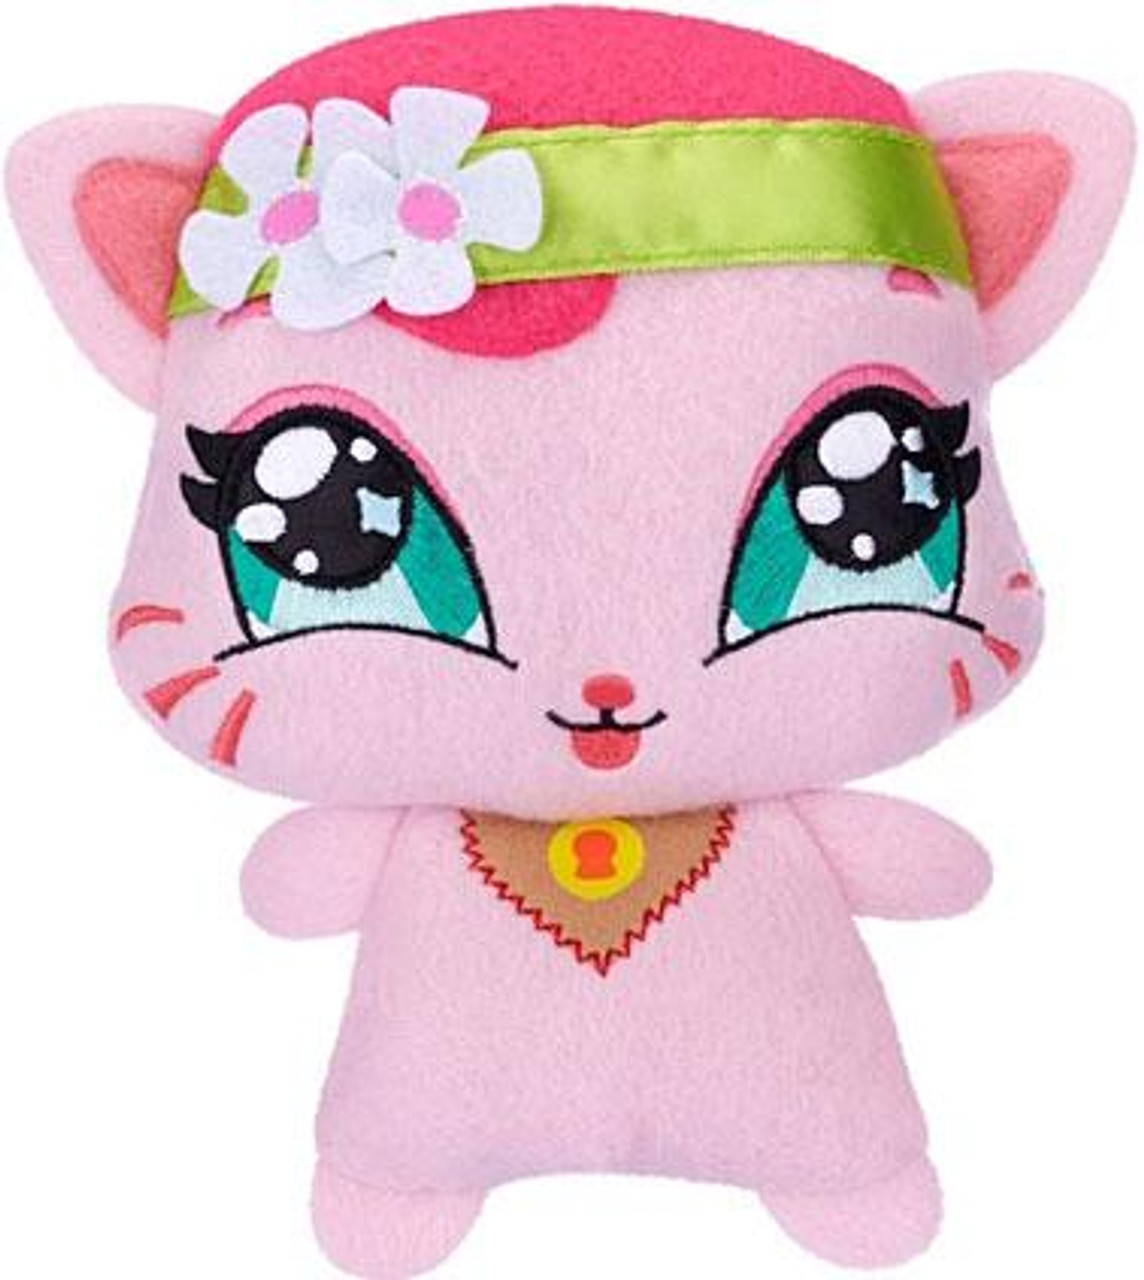 Winx Club Coco Plush [Pink Kitty]